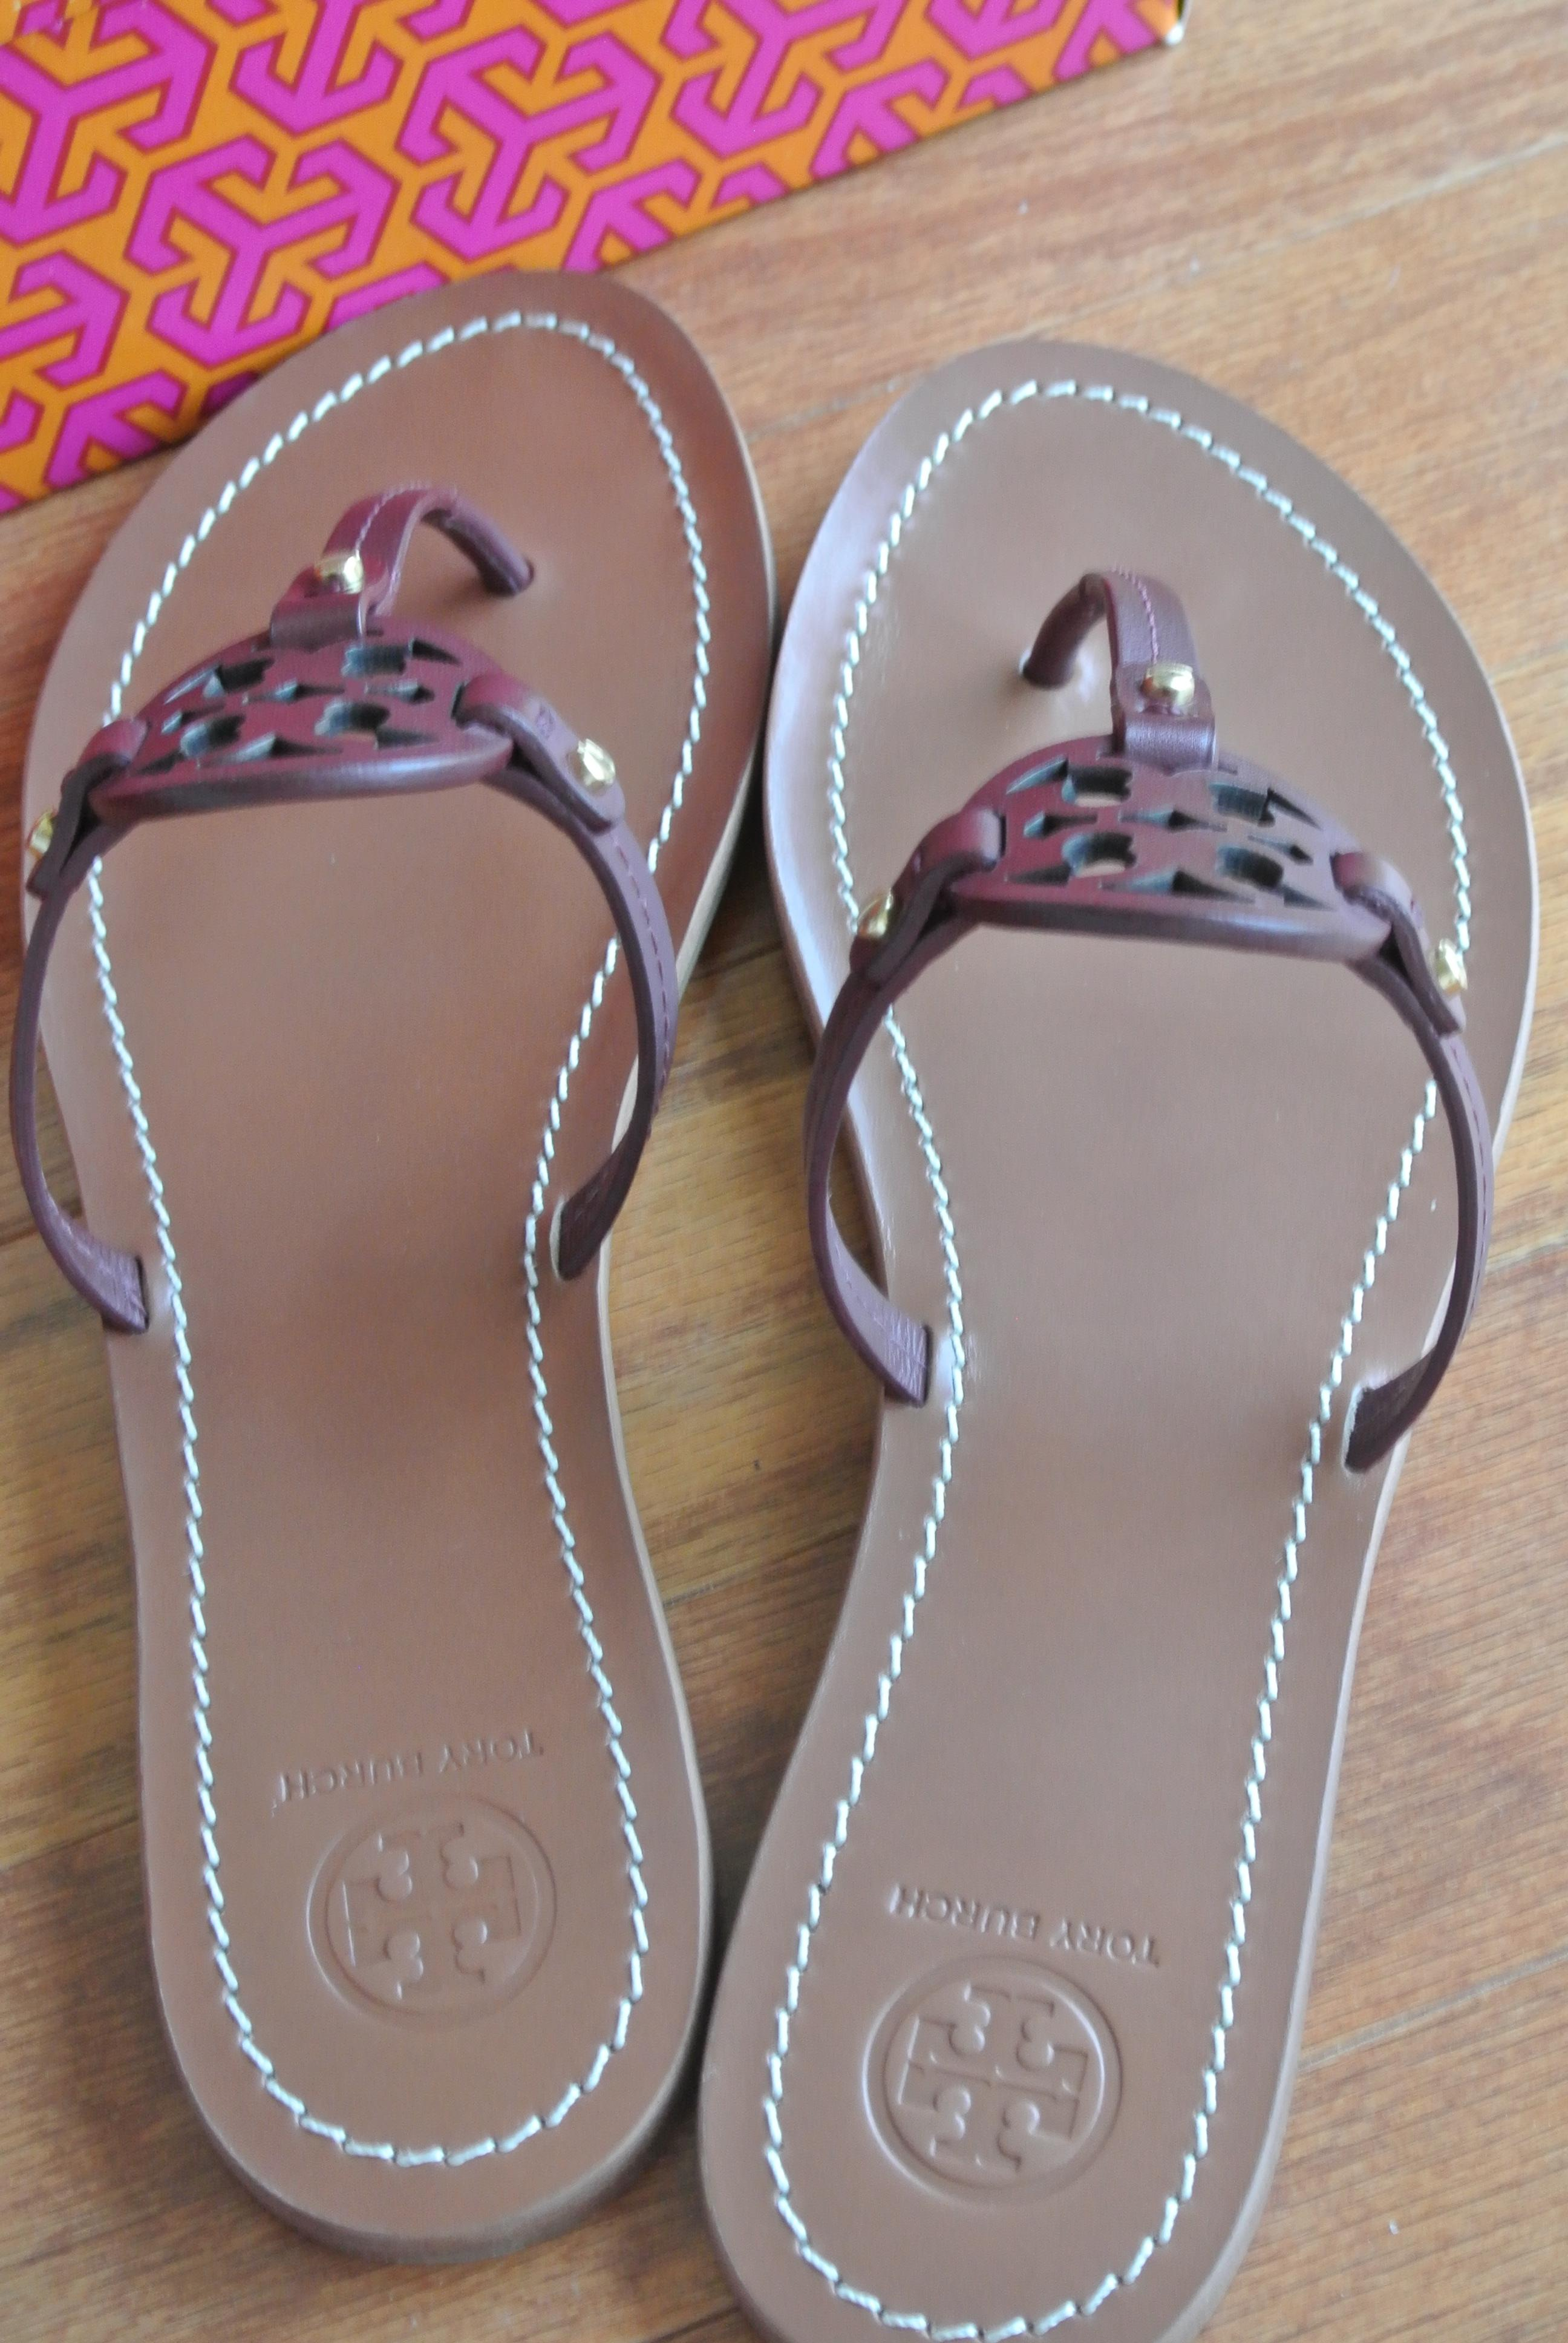 ac2121738df1 ... Tory Burch Red End-of-summer-sale Mini Miller Sandals Size US US ...